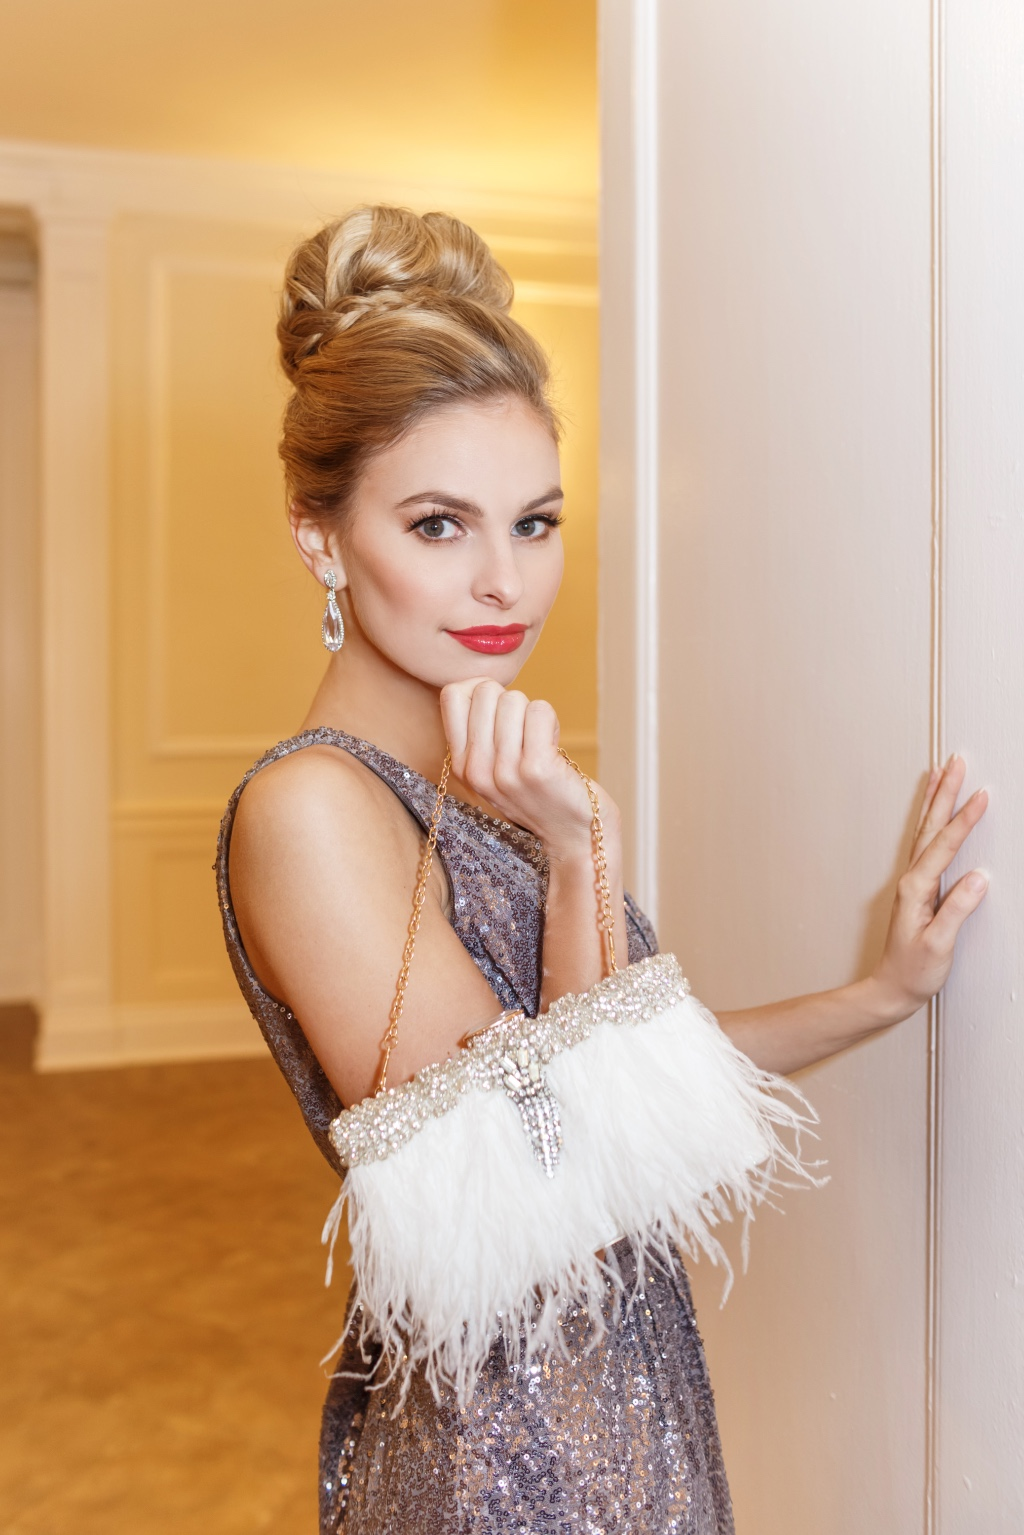 Walk into your wedding day with a gorgeous one of a kind bridal clutch